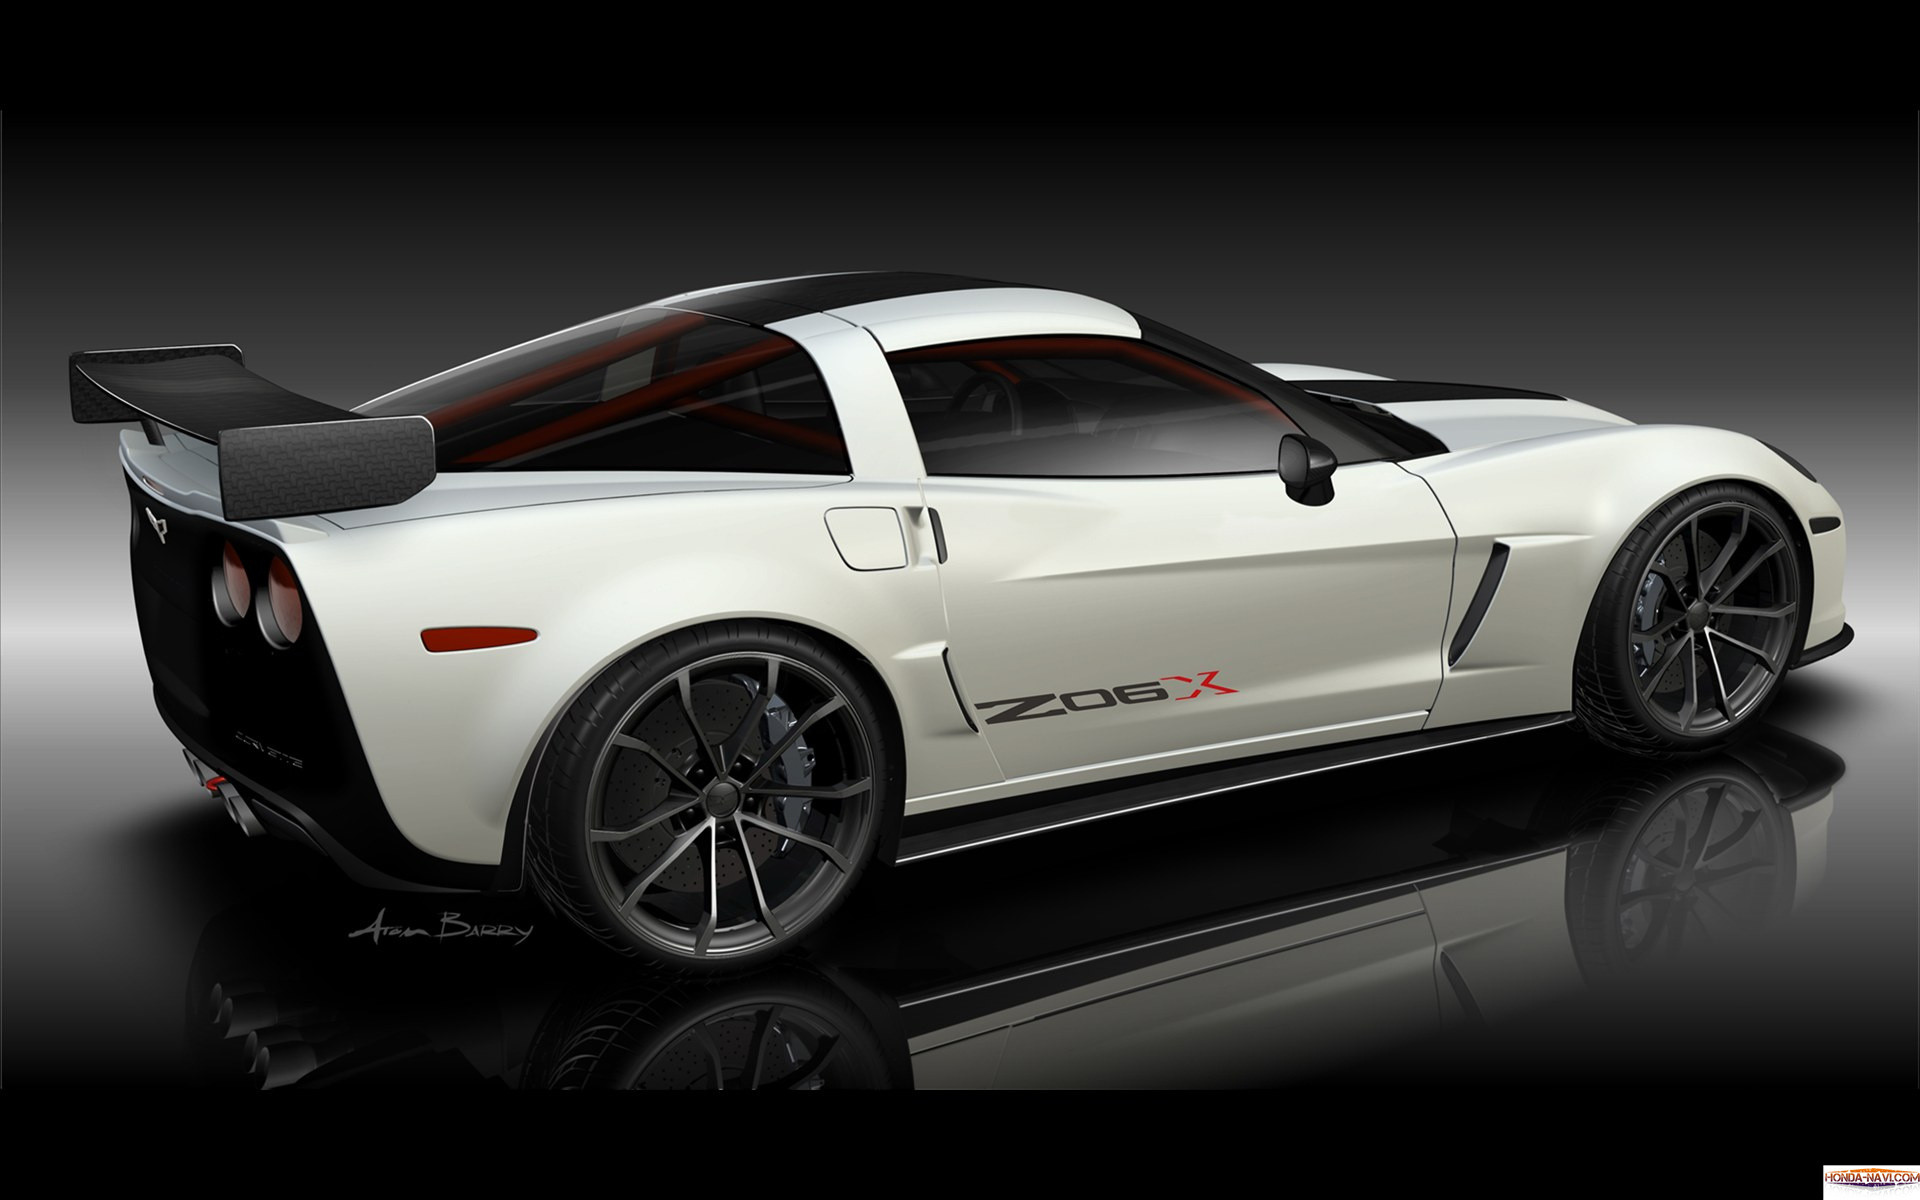 1920x1200 Chevrolet Corvette Grand Sport | HD Cars Wallpapers | Pinterest | Corvette  grand sport, Chevrolet Corvette and Chevrolet